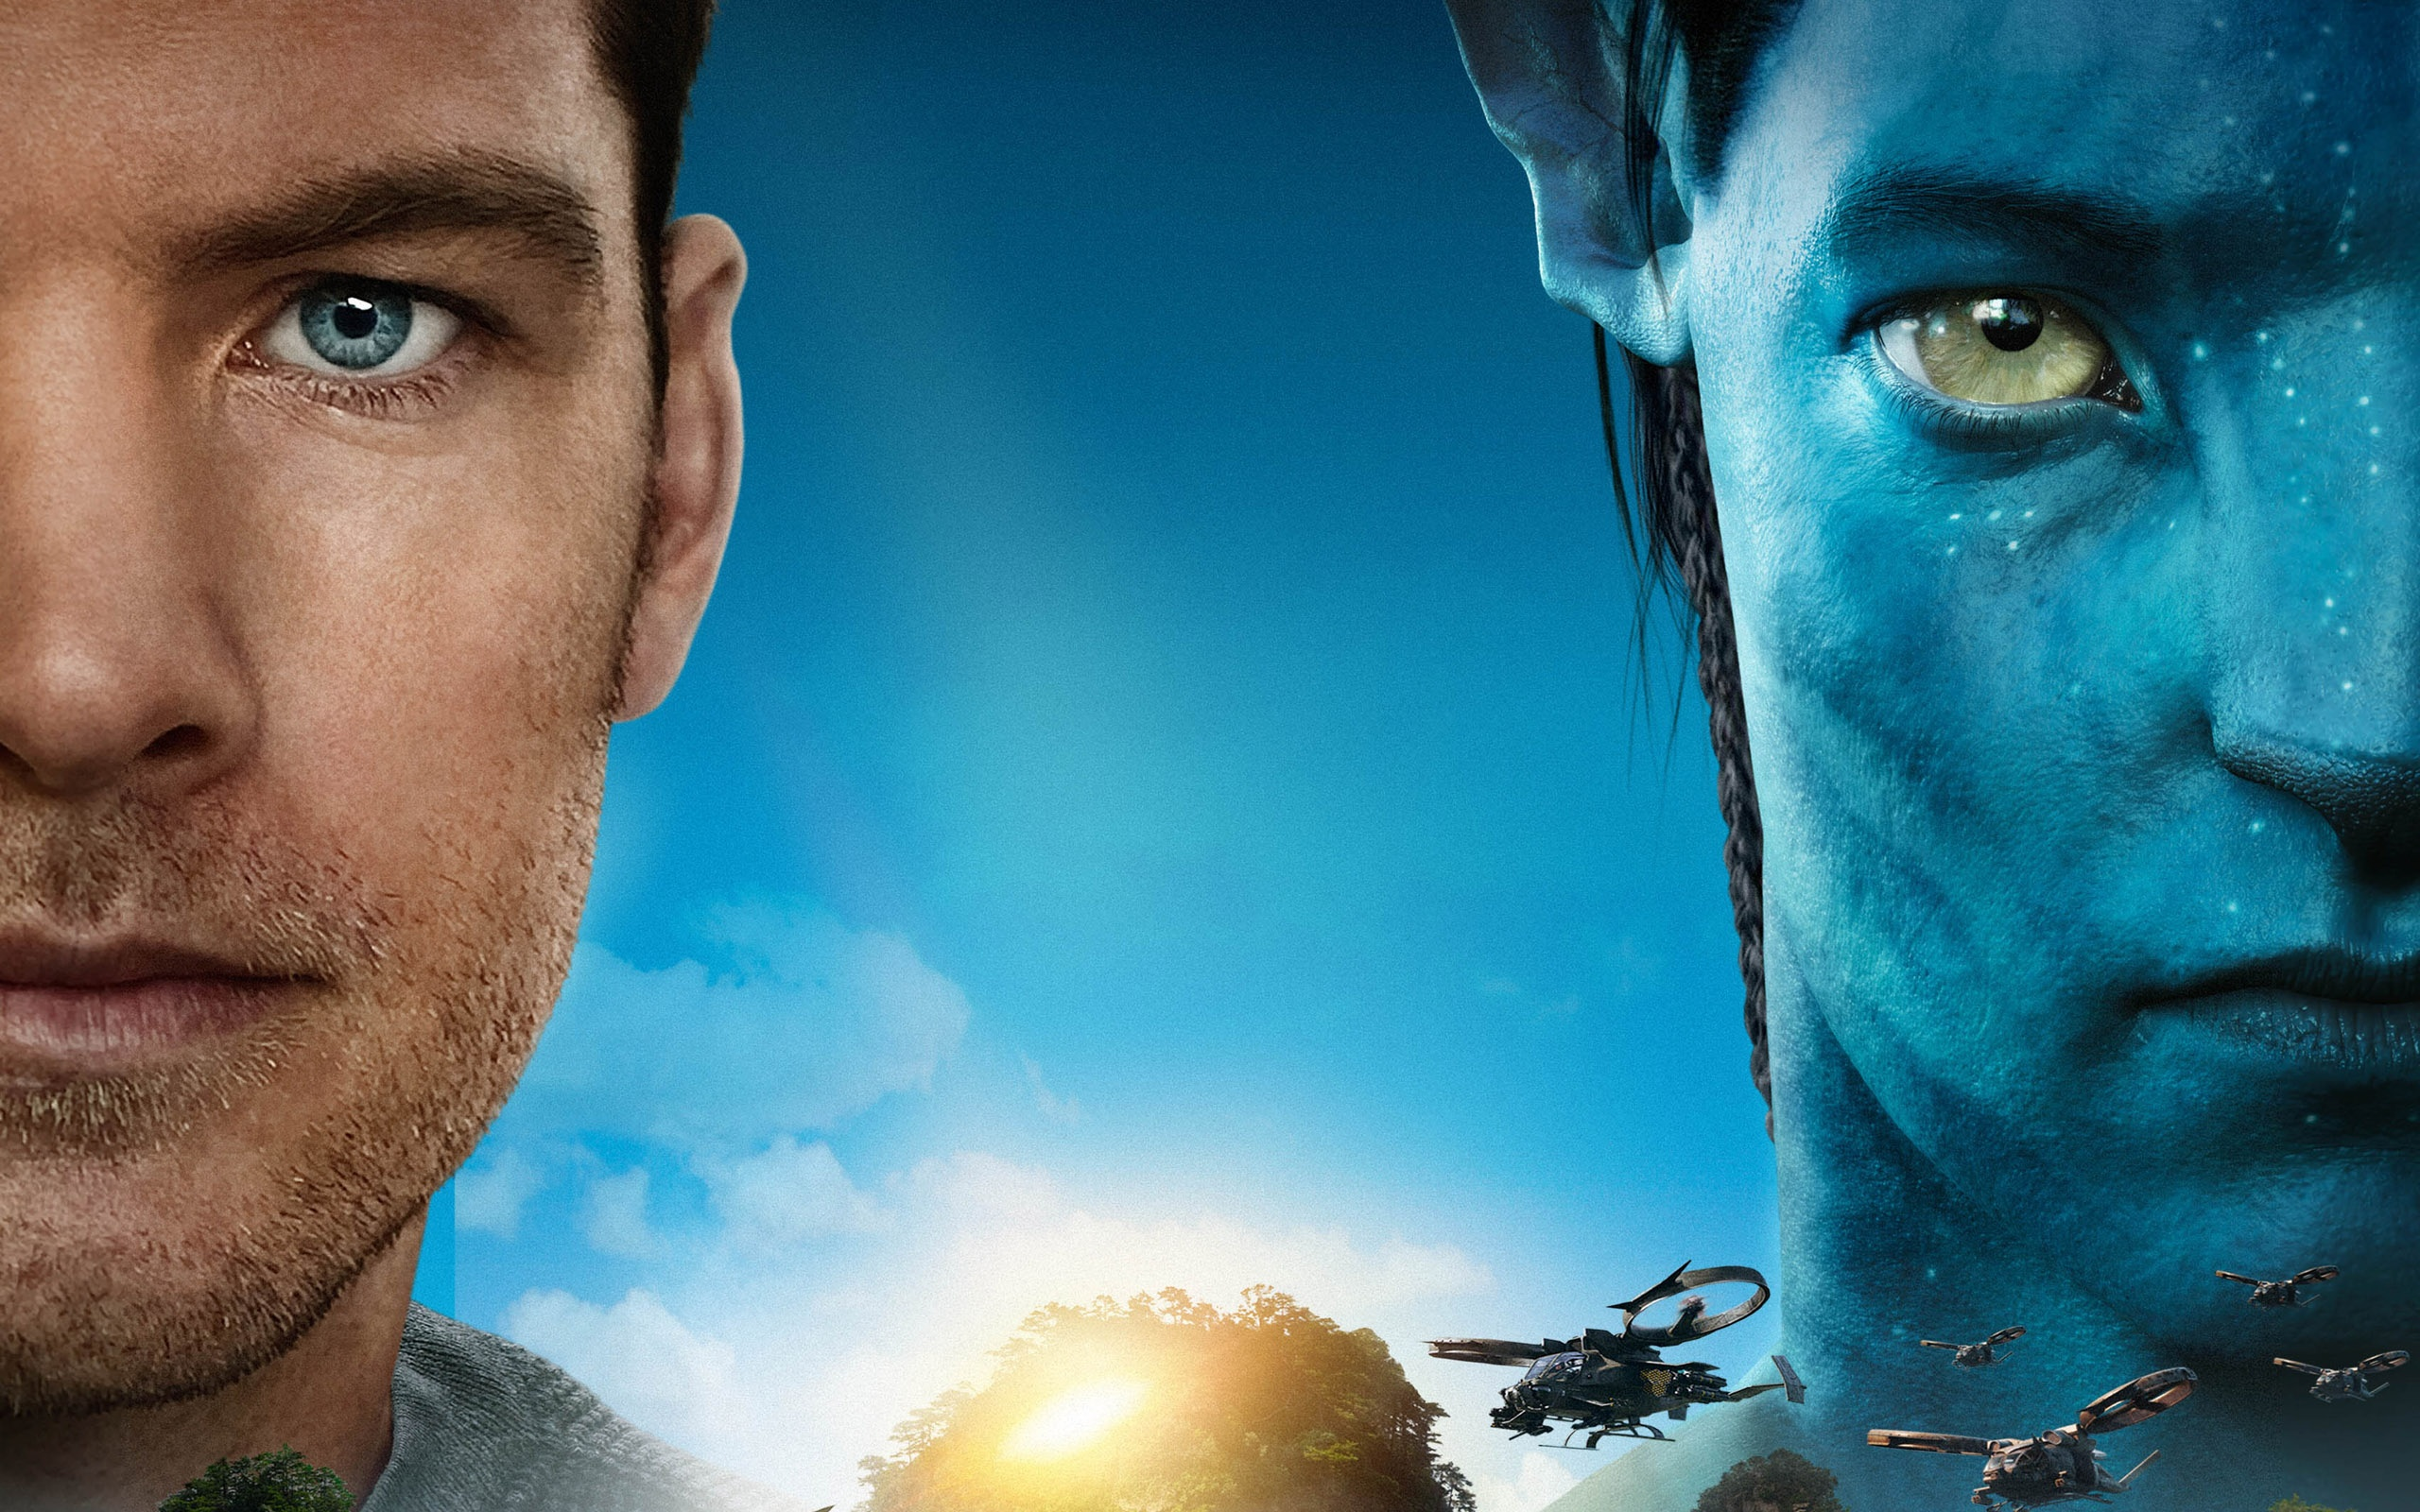 jake and avatar poster wallpapers in jpg format for free download